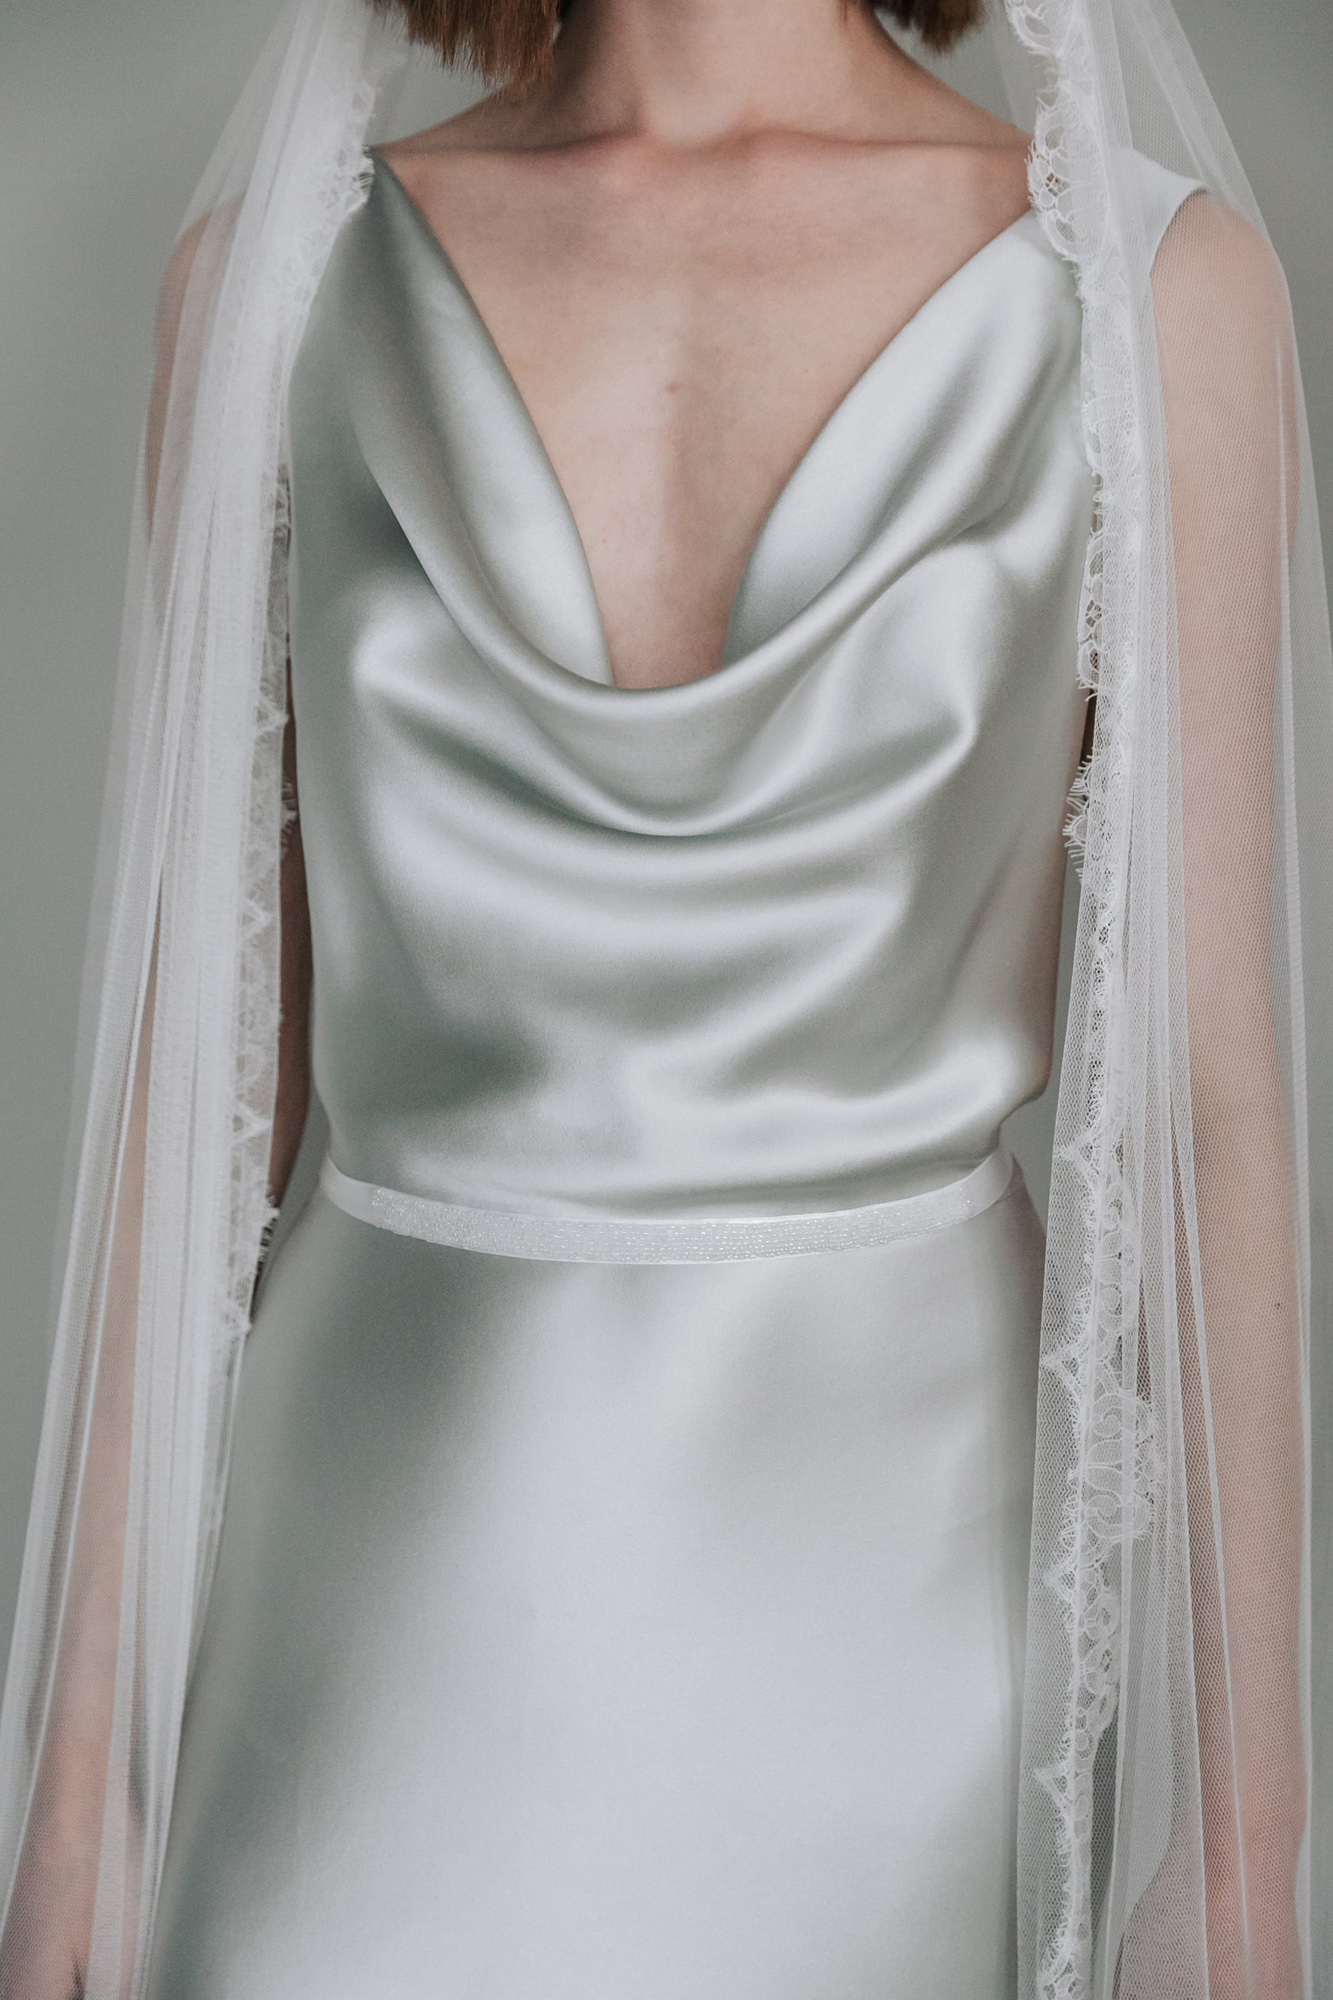 Kate-Beaumont-Sheffield-Sweet-Violet-Cowl-Neck-Bias-Cut-Silk-Wedding-Gown-1.jpg